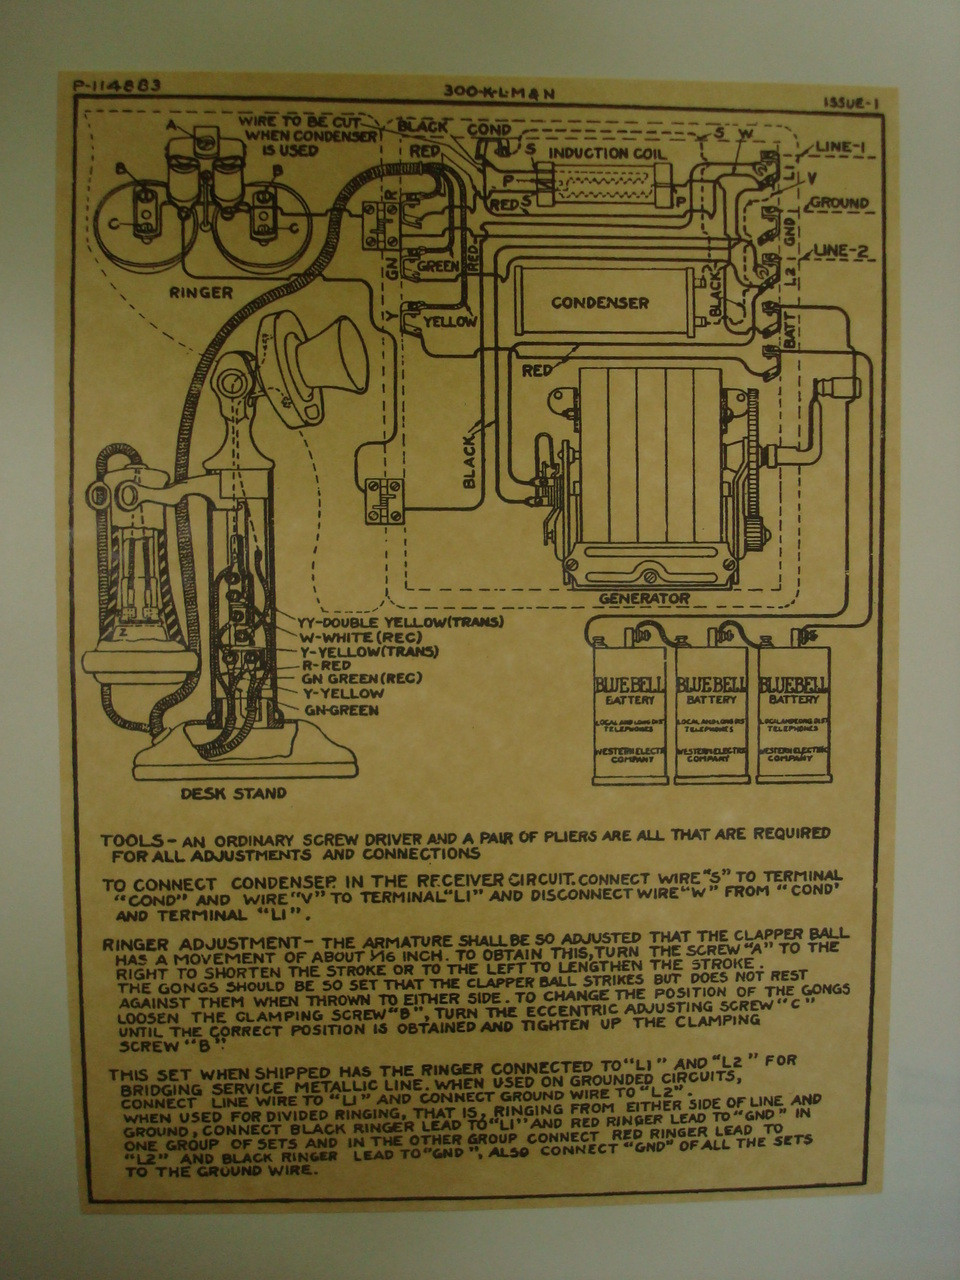 Antique Phone Wiring Diagram - Wiring Diagrams Second on tel tac 2 troubleshooting, tel tac oval track pro, tel tach ii,